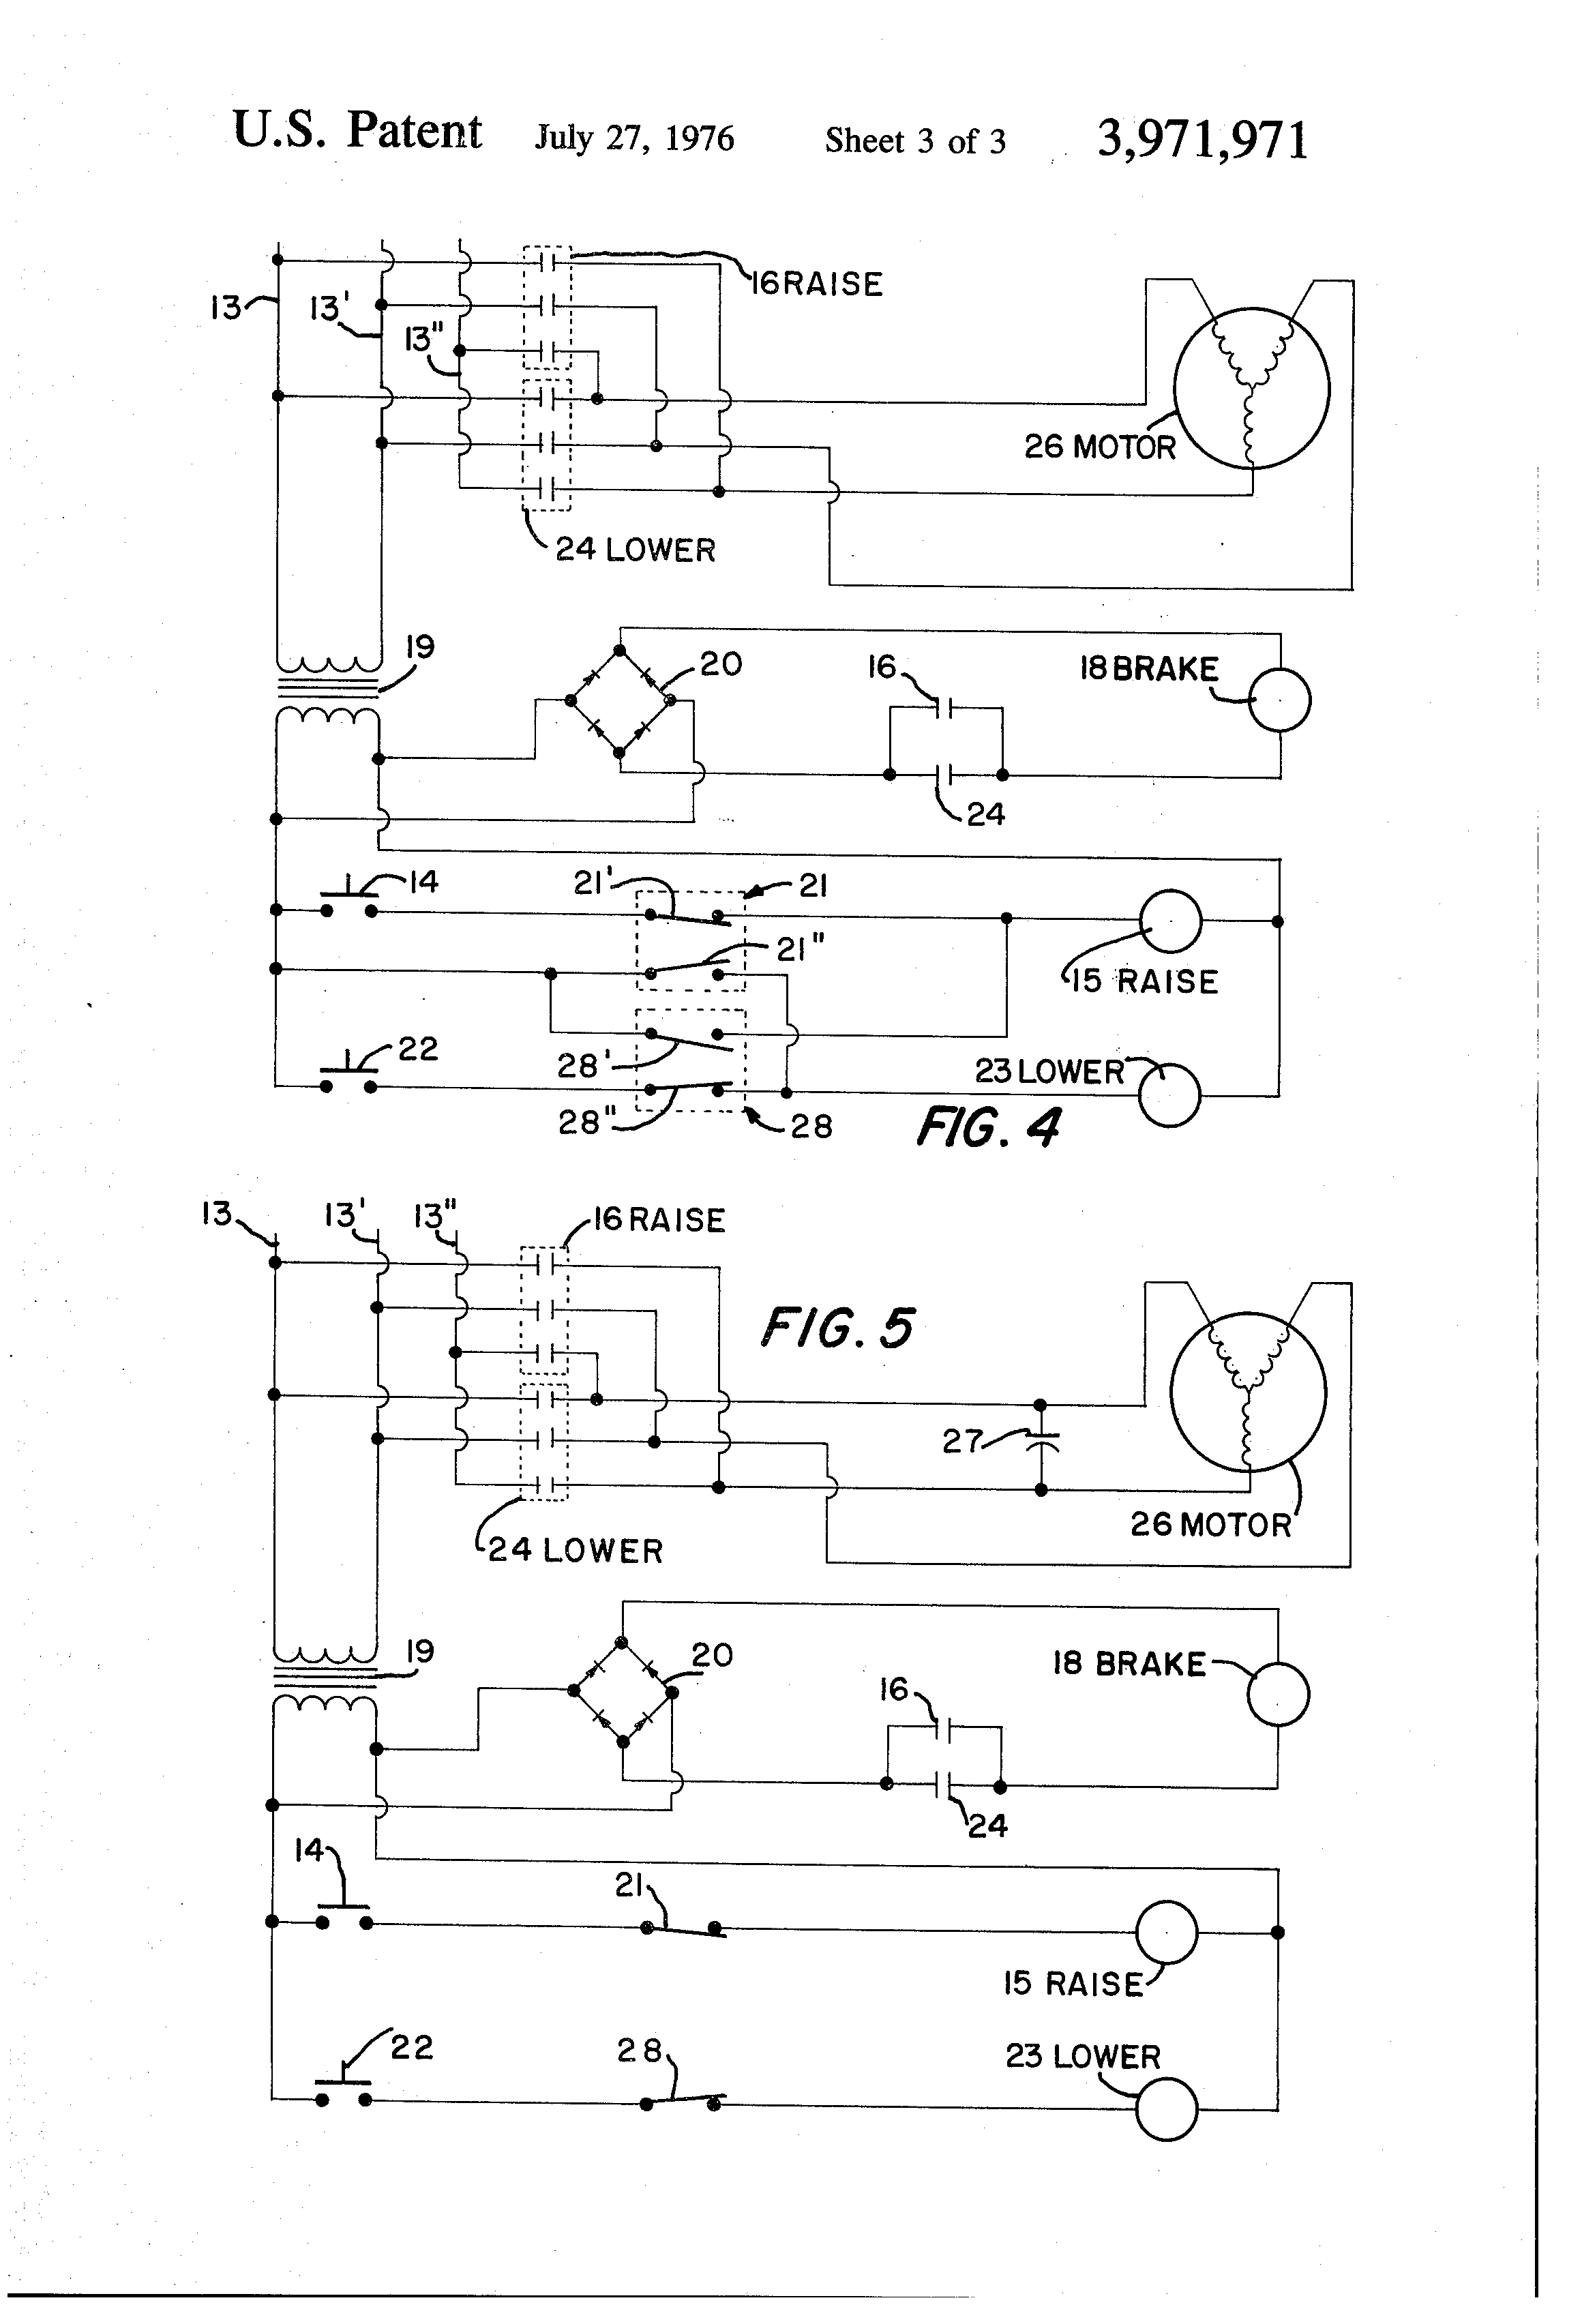 US3971971 3 demag hoist wiring diagram cm hoist wiring diagram \u2022 wiring hitachi electric chain hoist wiring diagram at mifinder.co